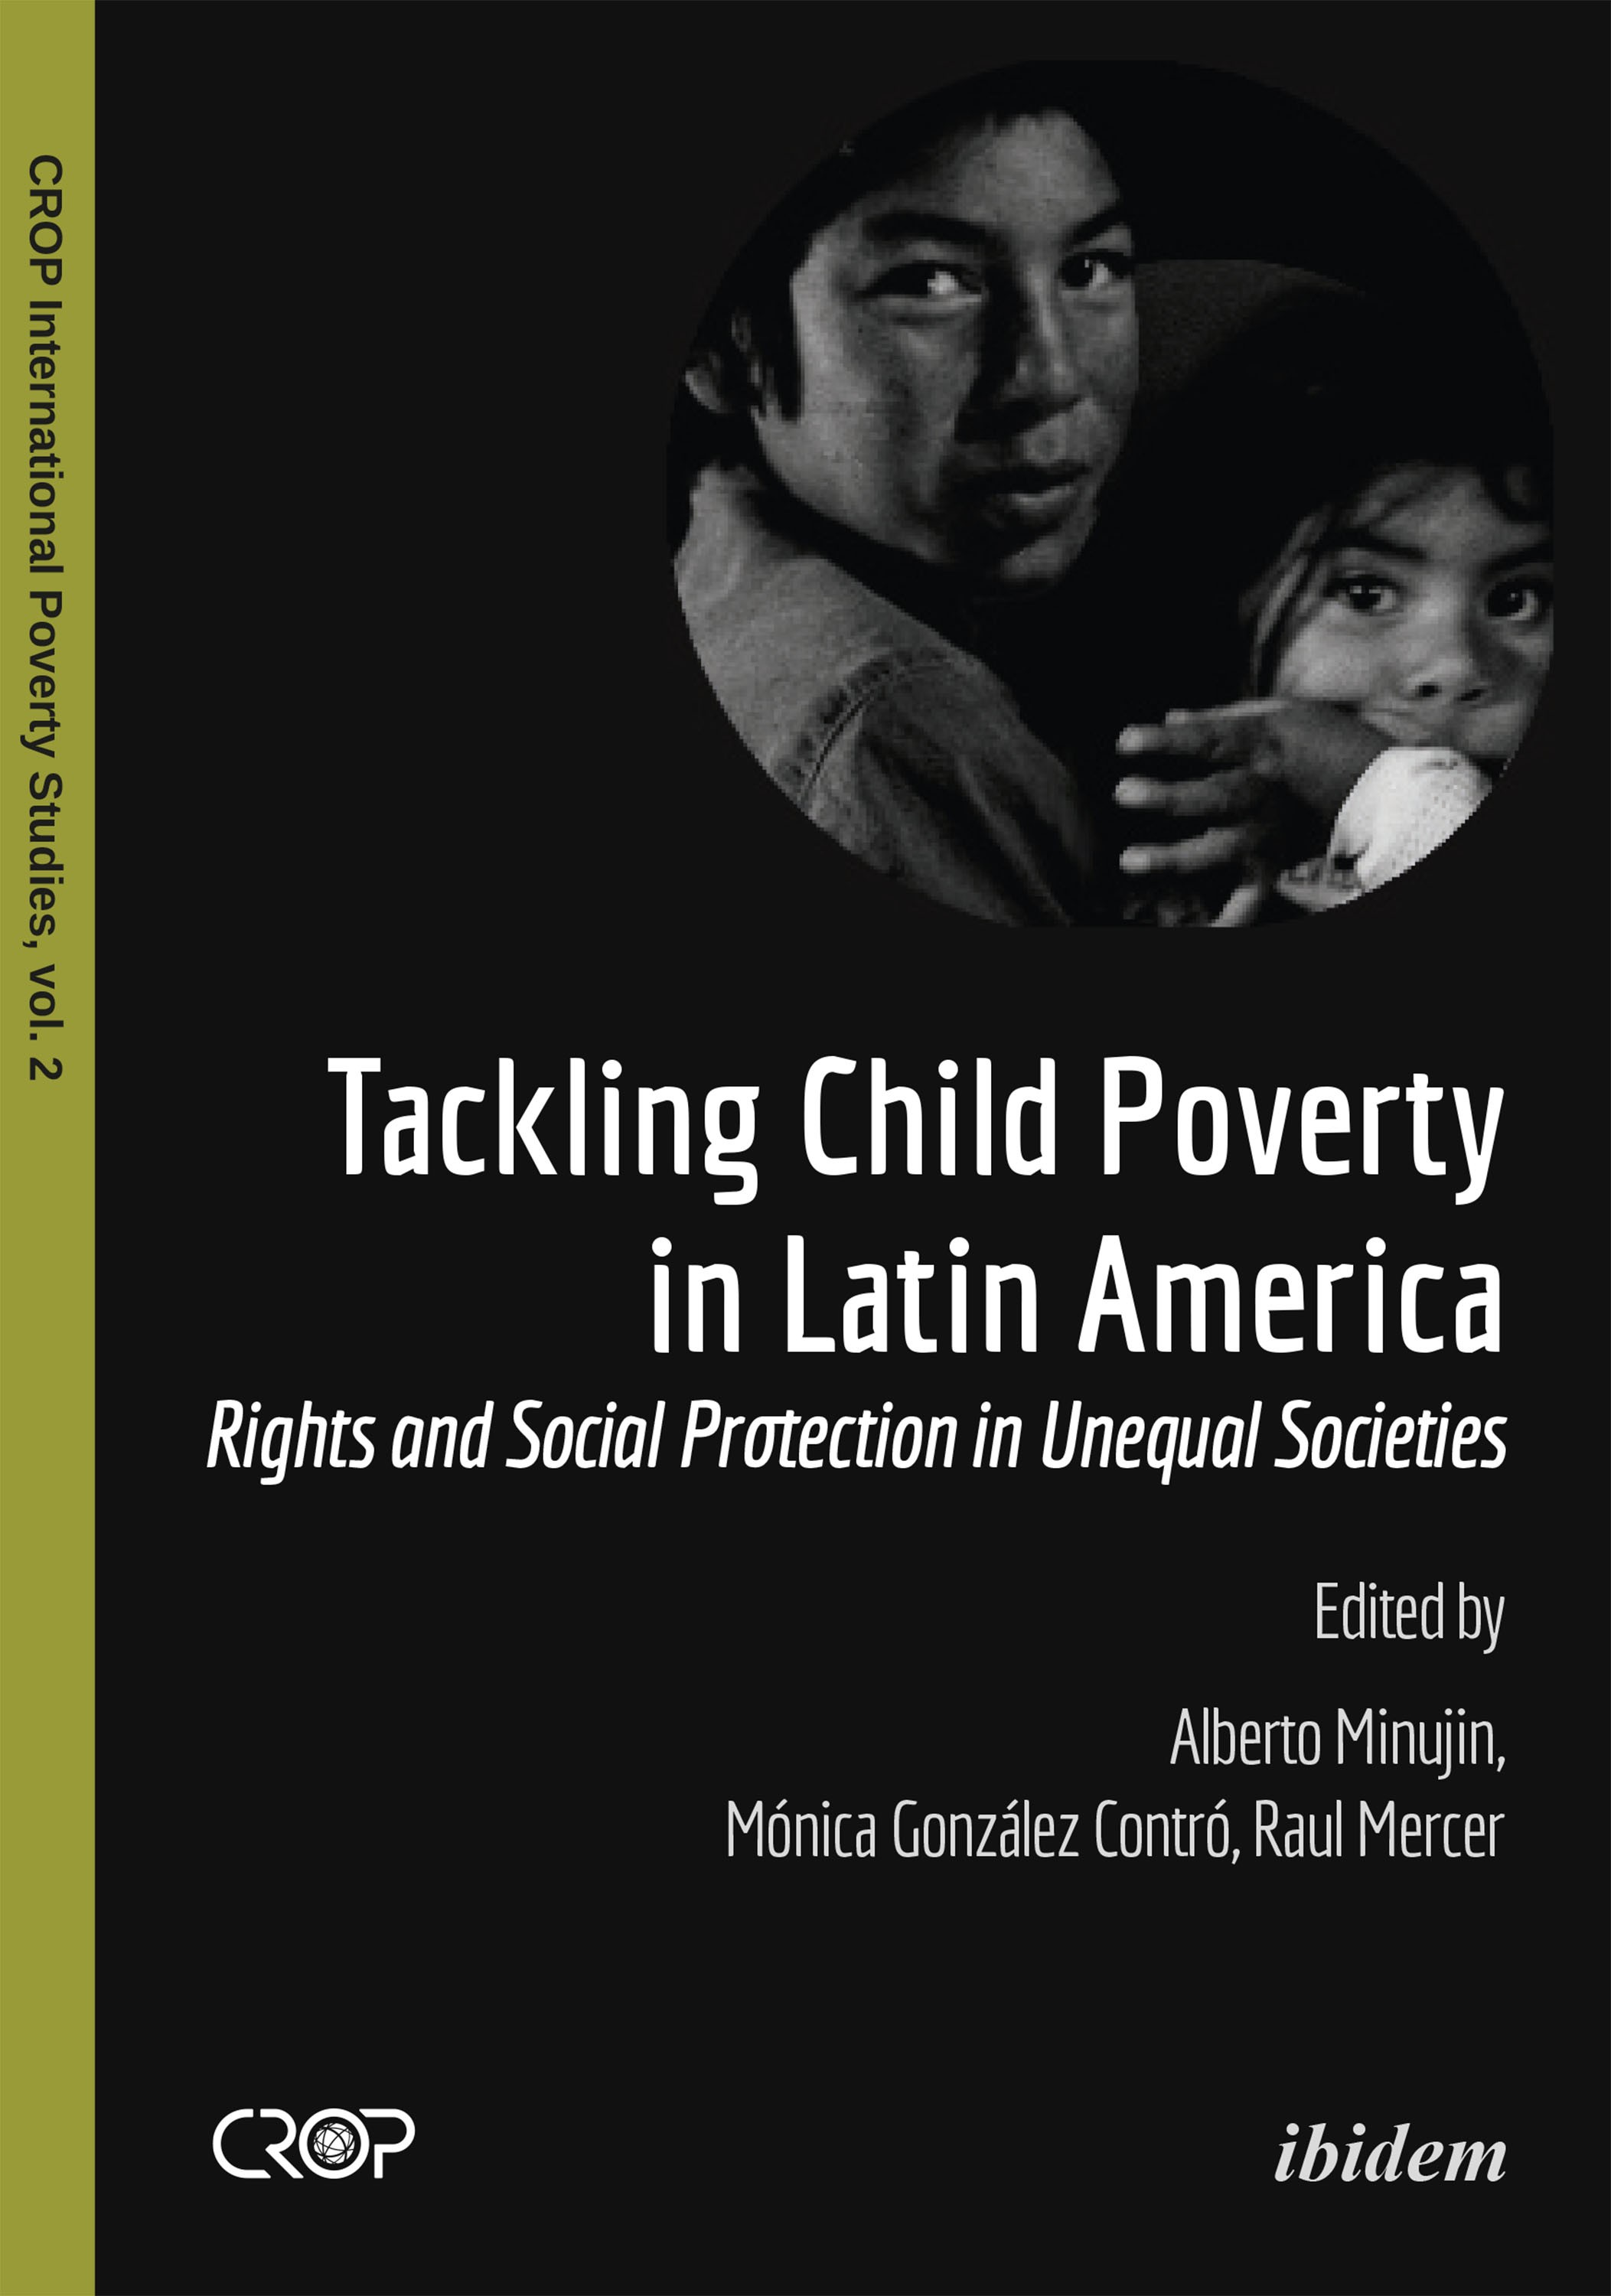 Tackling Child Poverty in Latin America